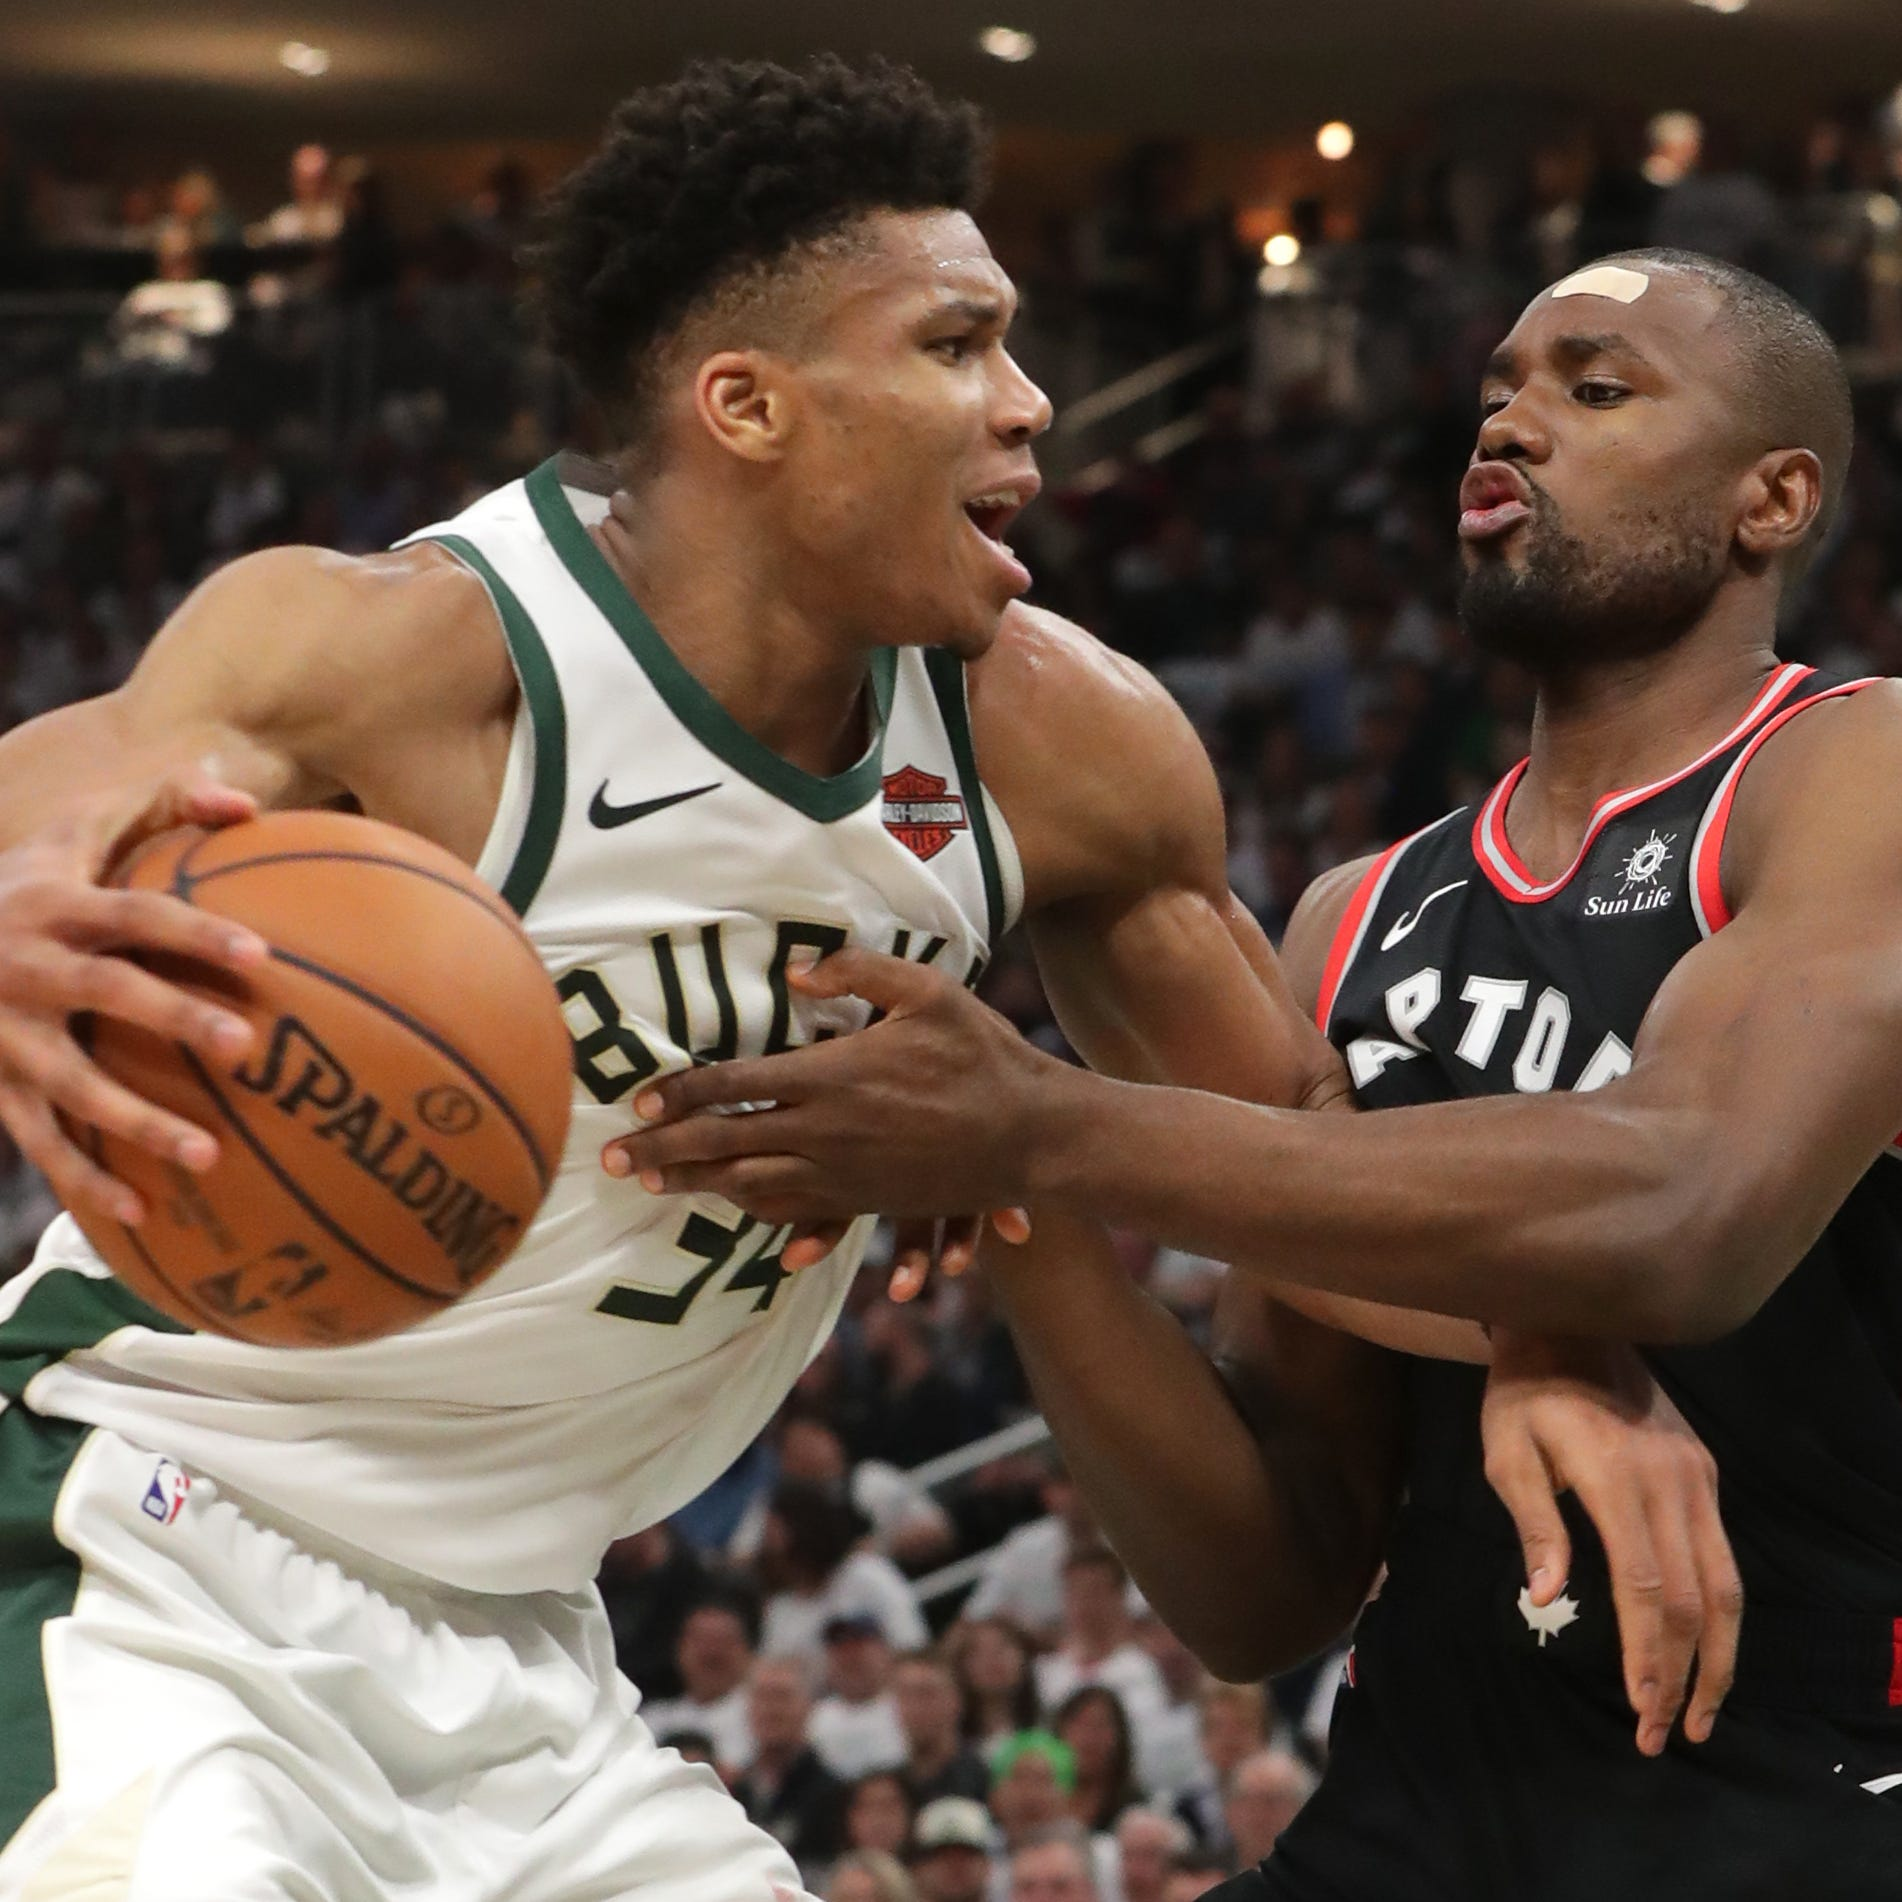 Bucks star Giannis Antetokounmpo could rule the East with LeBron James now with the Lakers